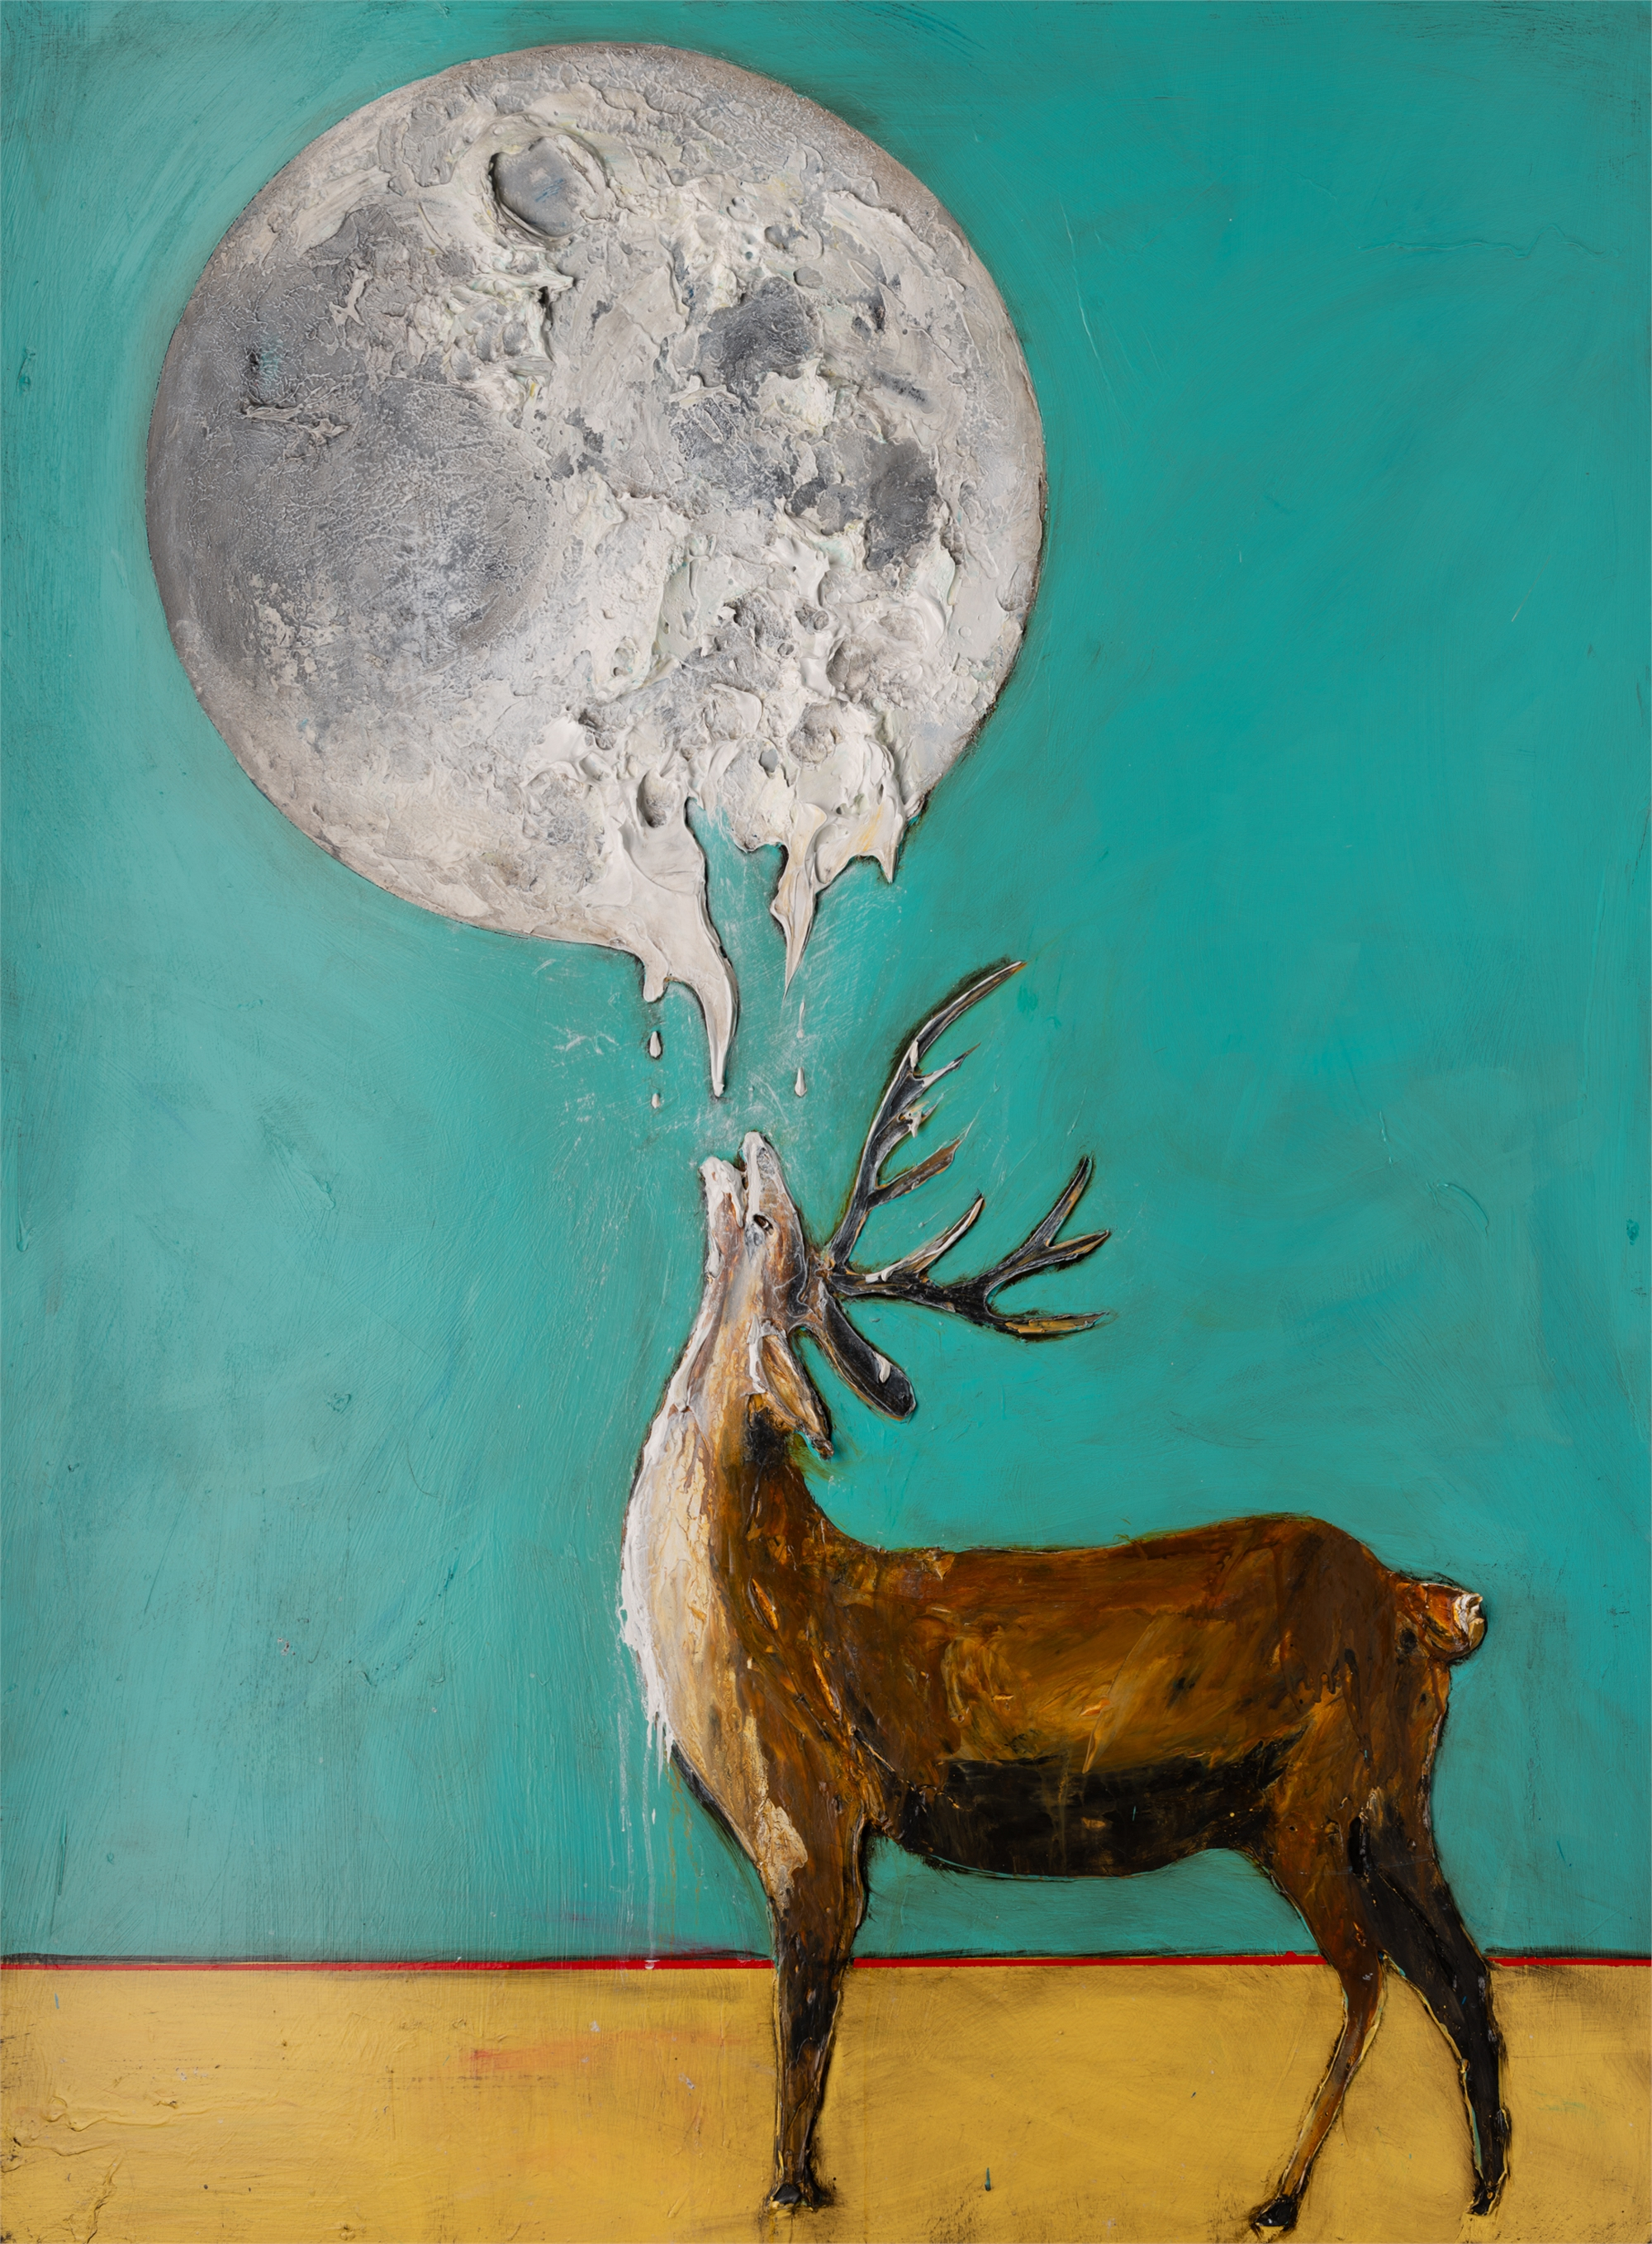 DEER AND MOON MS-44.5x59.5-2019-313 by JUSTIN GAFFREY